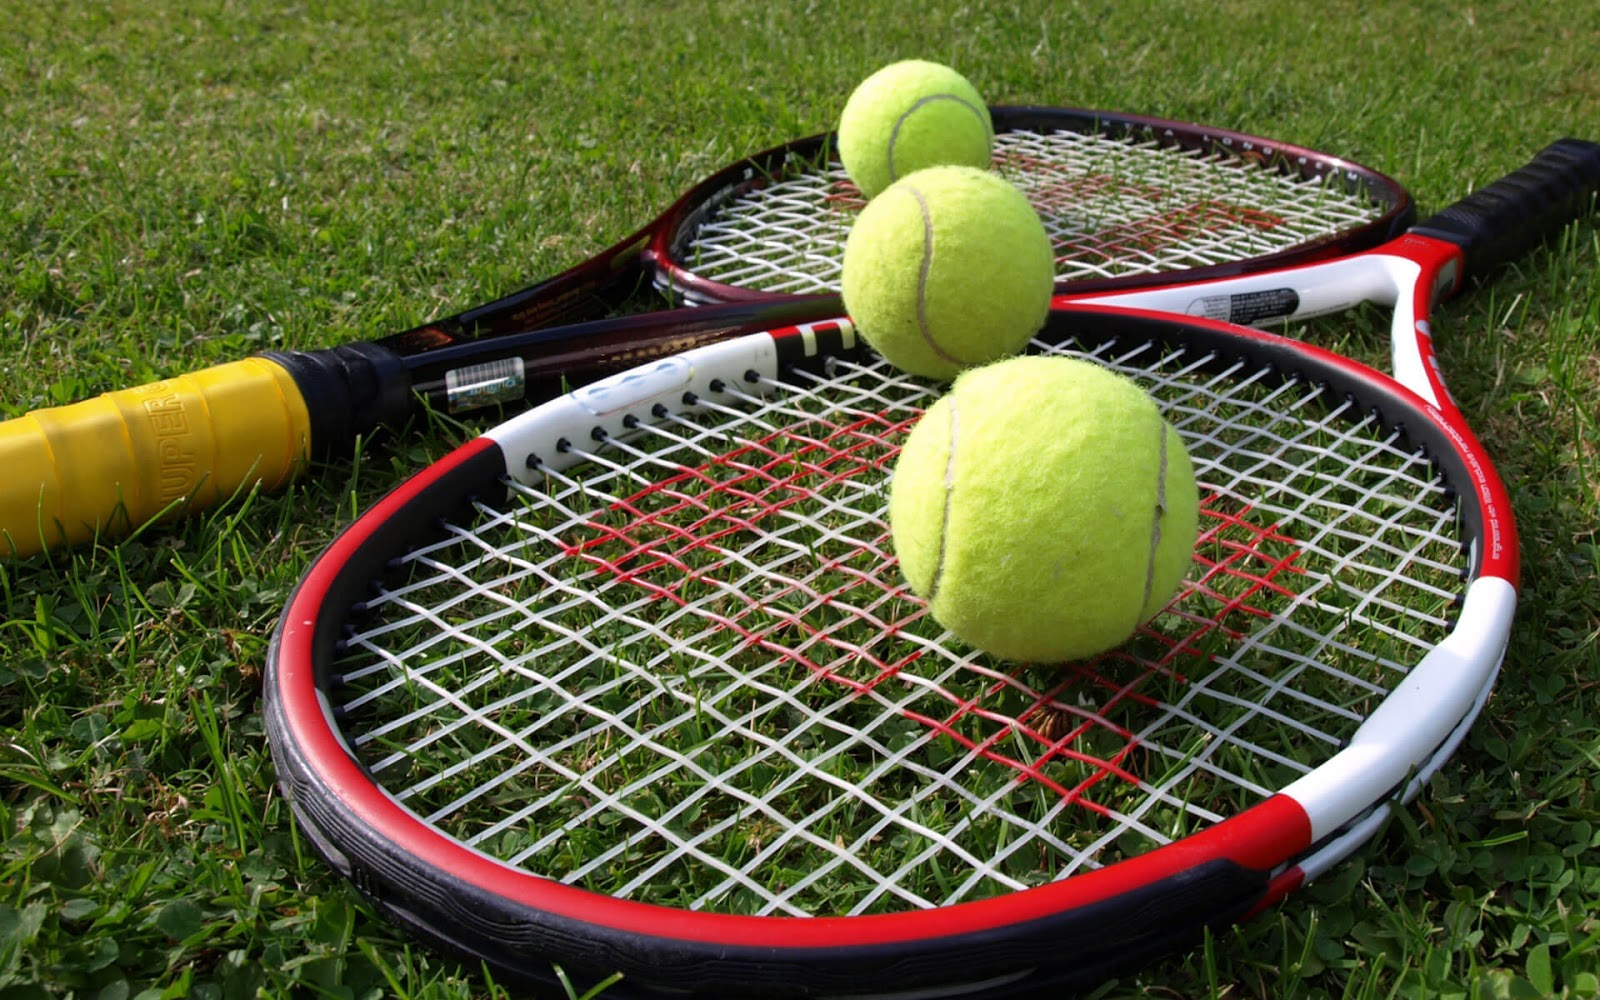 The oldest and most famous tennis tournament is over!